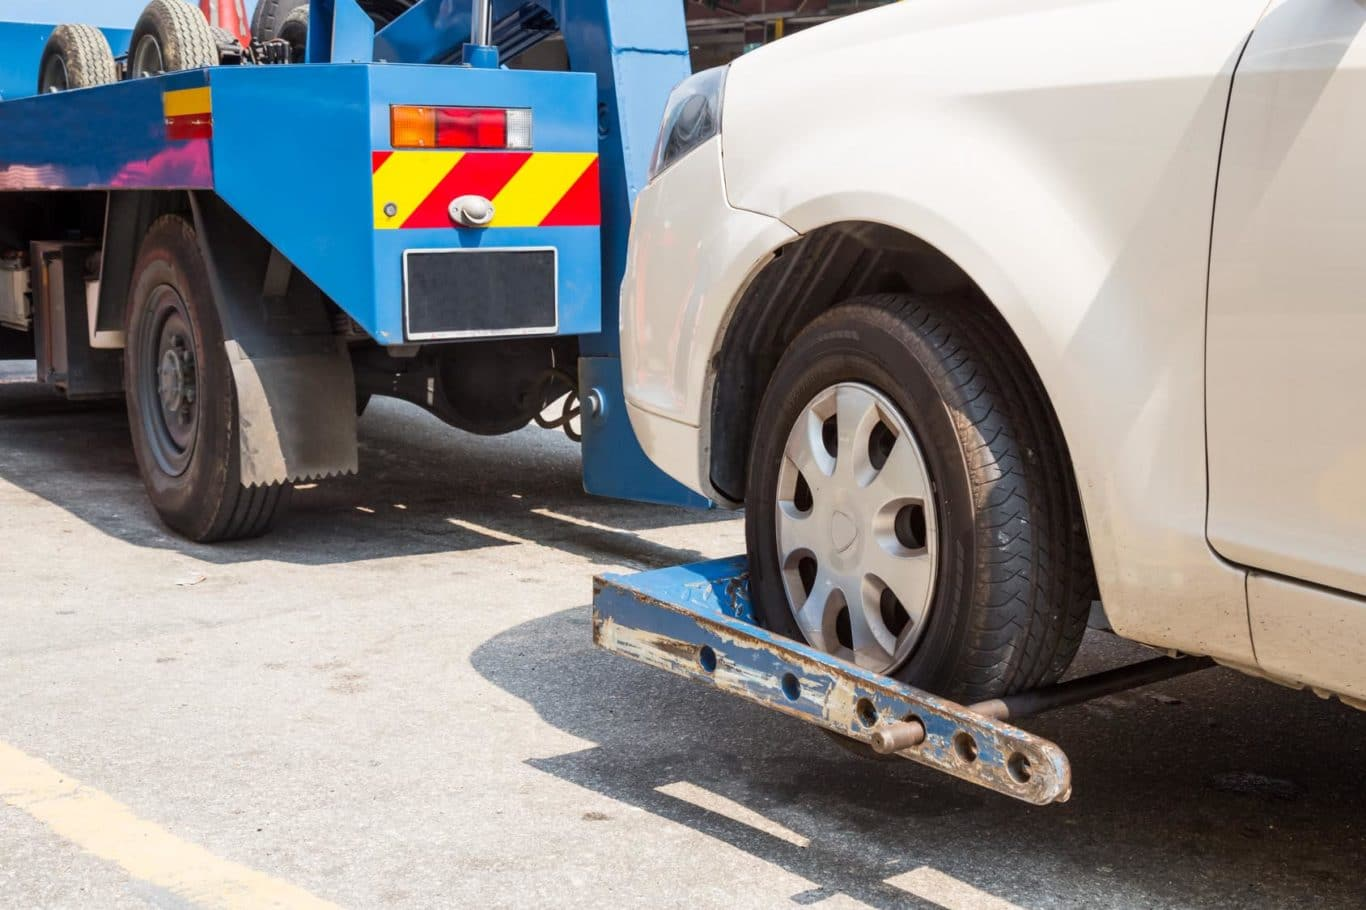 Boyerstown expert Towing And Recovery Dublin services